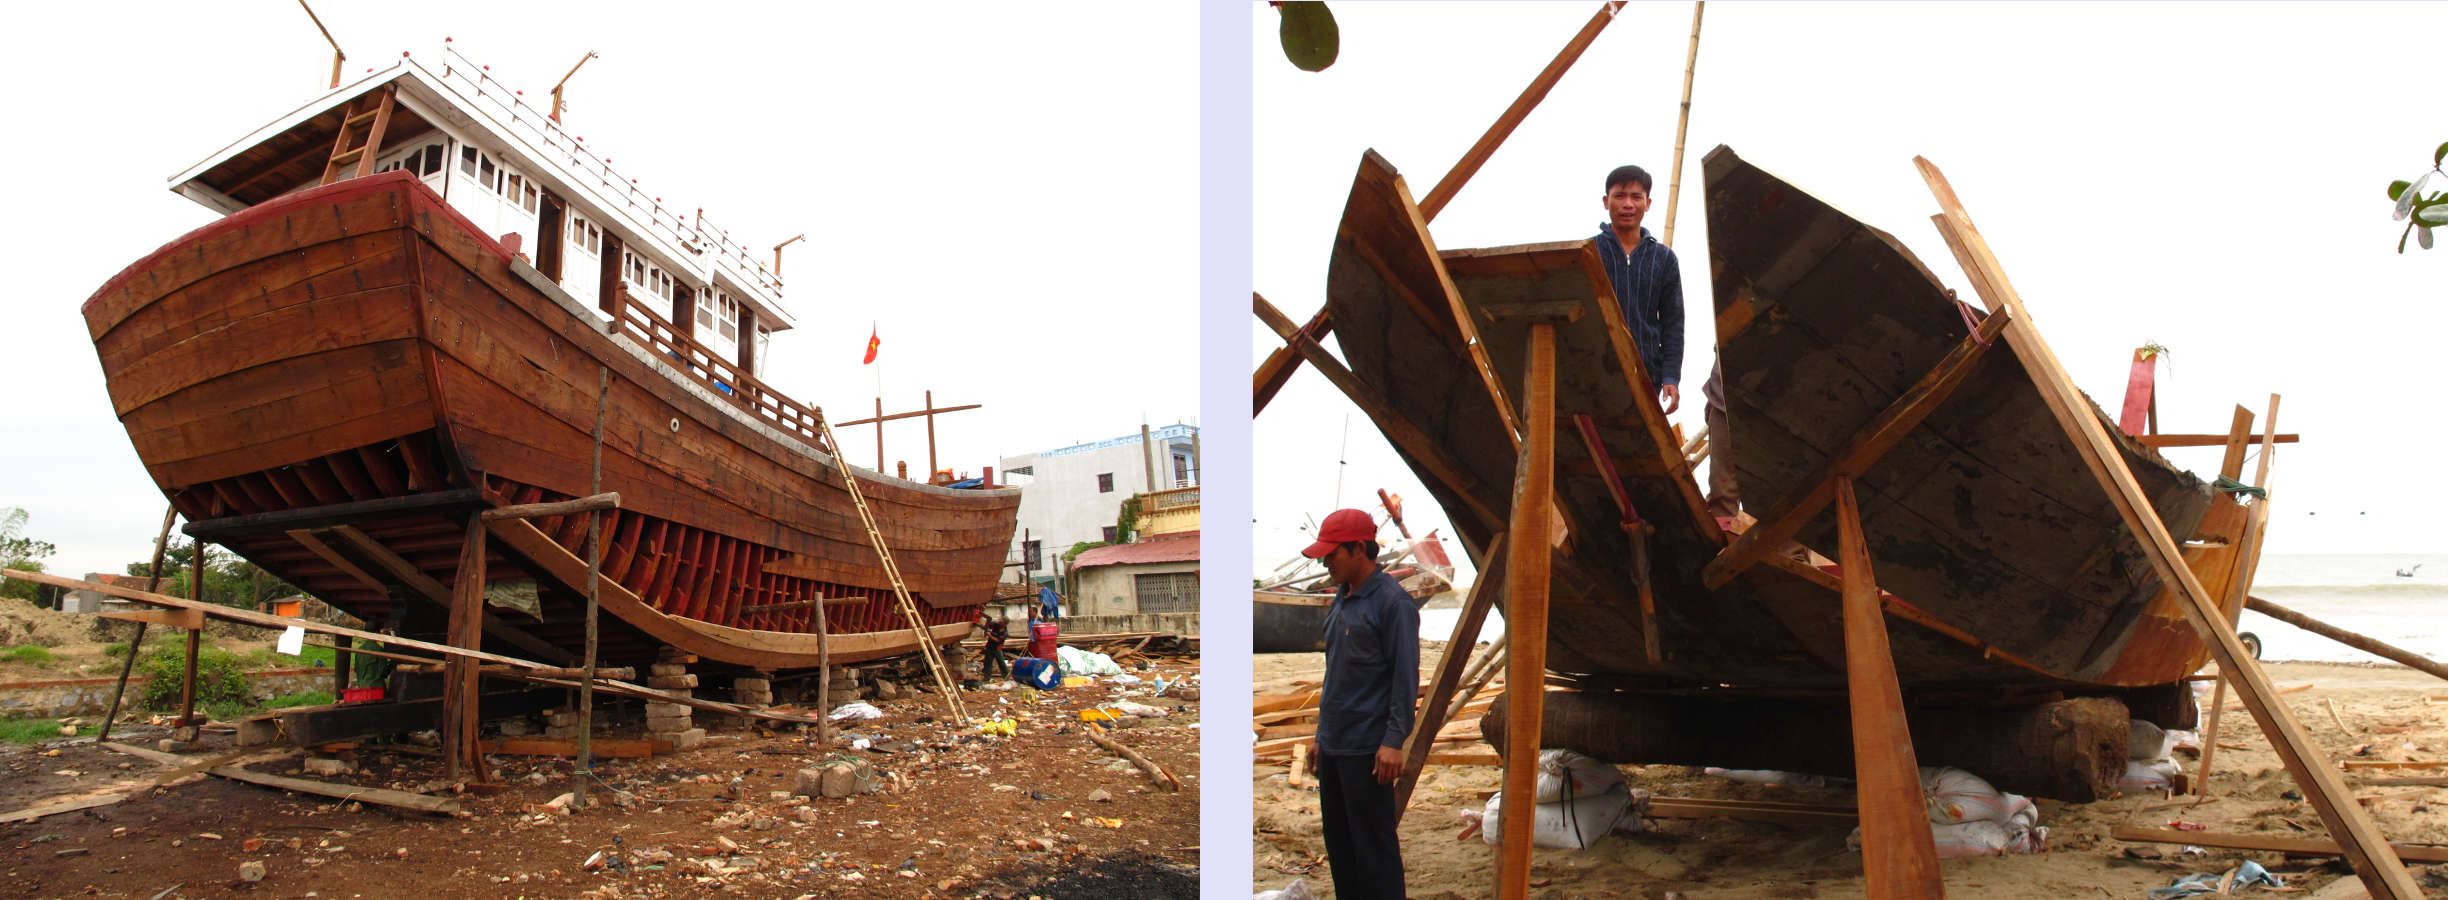 Modern Motor Fishing Vessel and Motorized Ghe Manh, both in construction phase.